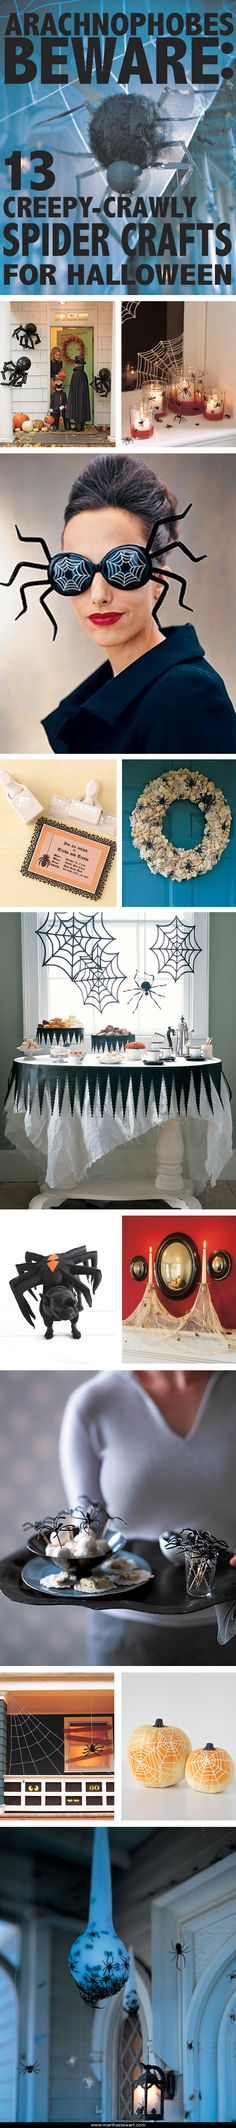 What spins cobwebs, inspires spooky stories, and has eight spindly legs? It's the spider -- the inspiration for your next craft project! From web-covered windows to creepy-crawly costume accessories, we have a range of ideas to decorate your home for Halloween this year.